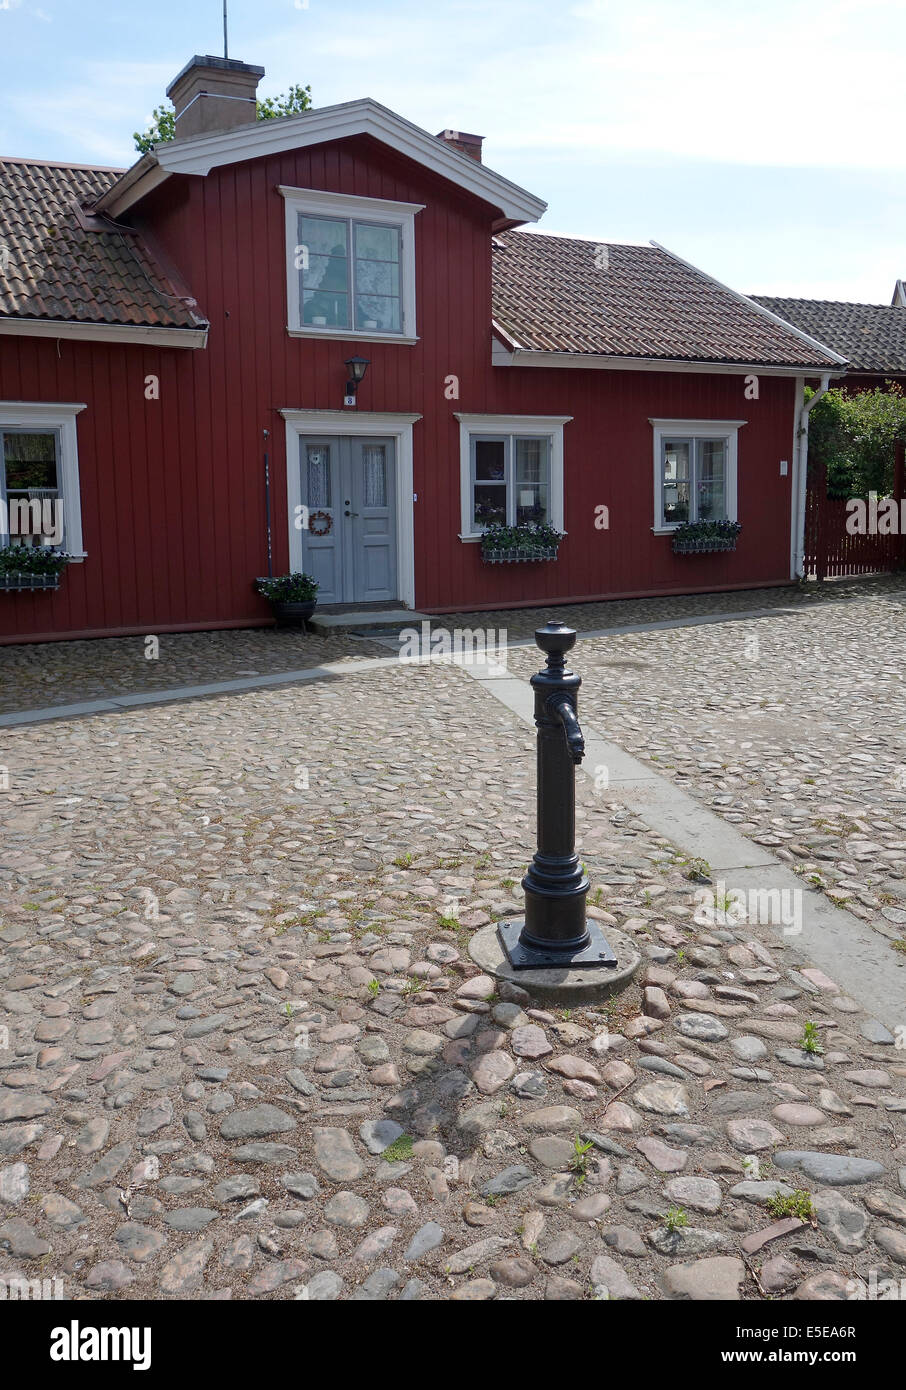 Public water tap in the middle of cobbled square of Old Lidköping. Sweden. - Stock Image